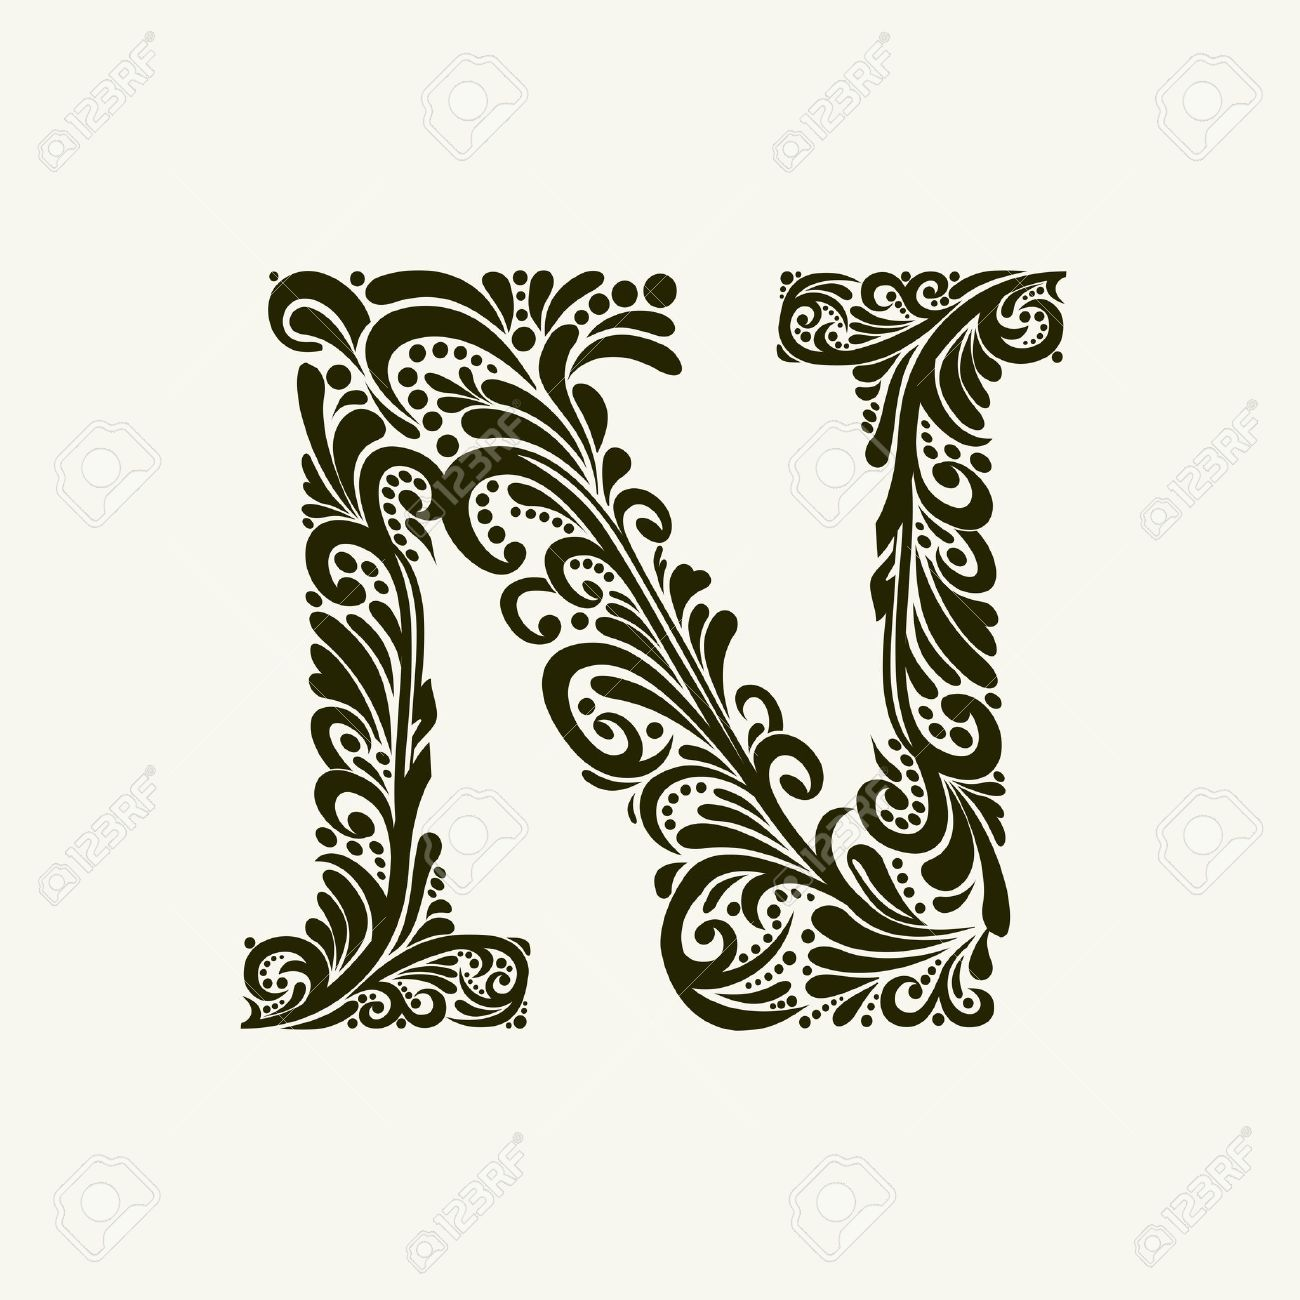 Elegant Capital Letter N In The Style Of Baroque To Use Monograms Logos